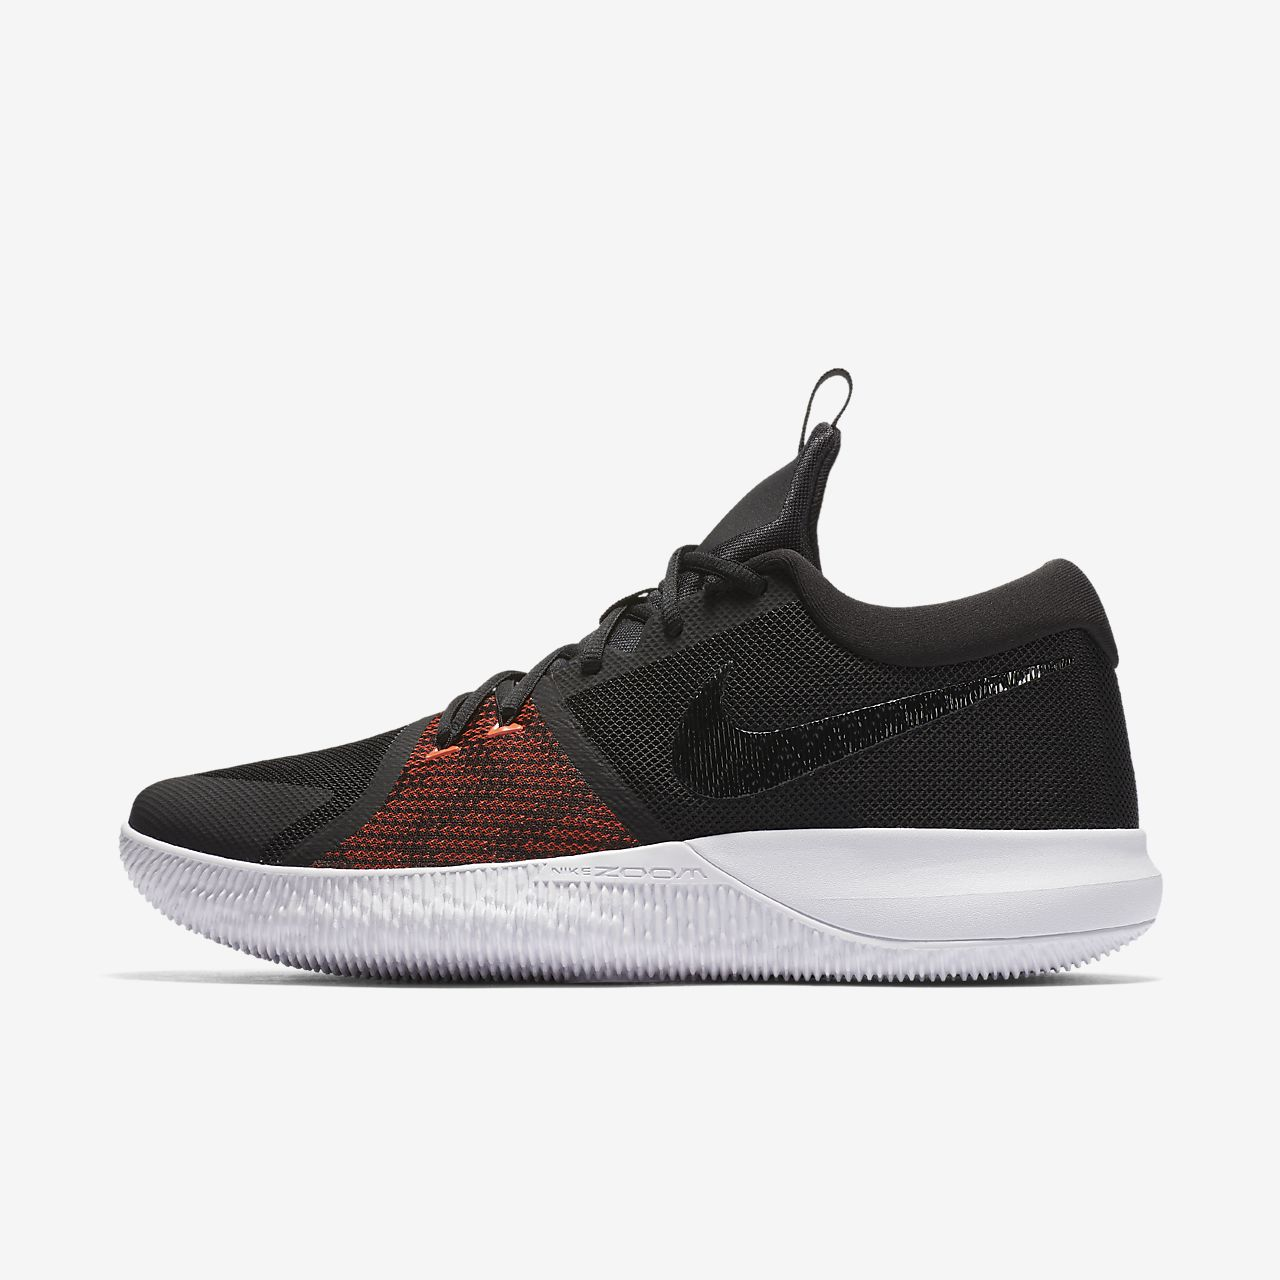 nike basketball shoes the best for I joined forbes in 1998 curry's under armour kicks ranked third among the best-sellers with durant (nike) but the performance basketball shoe.